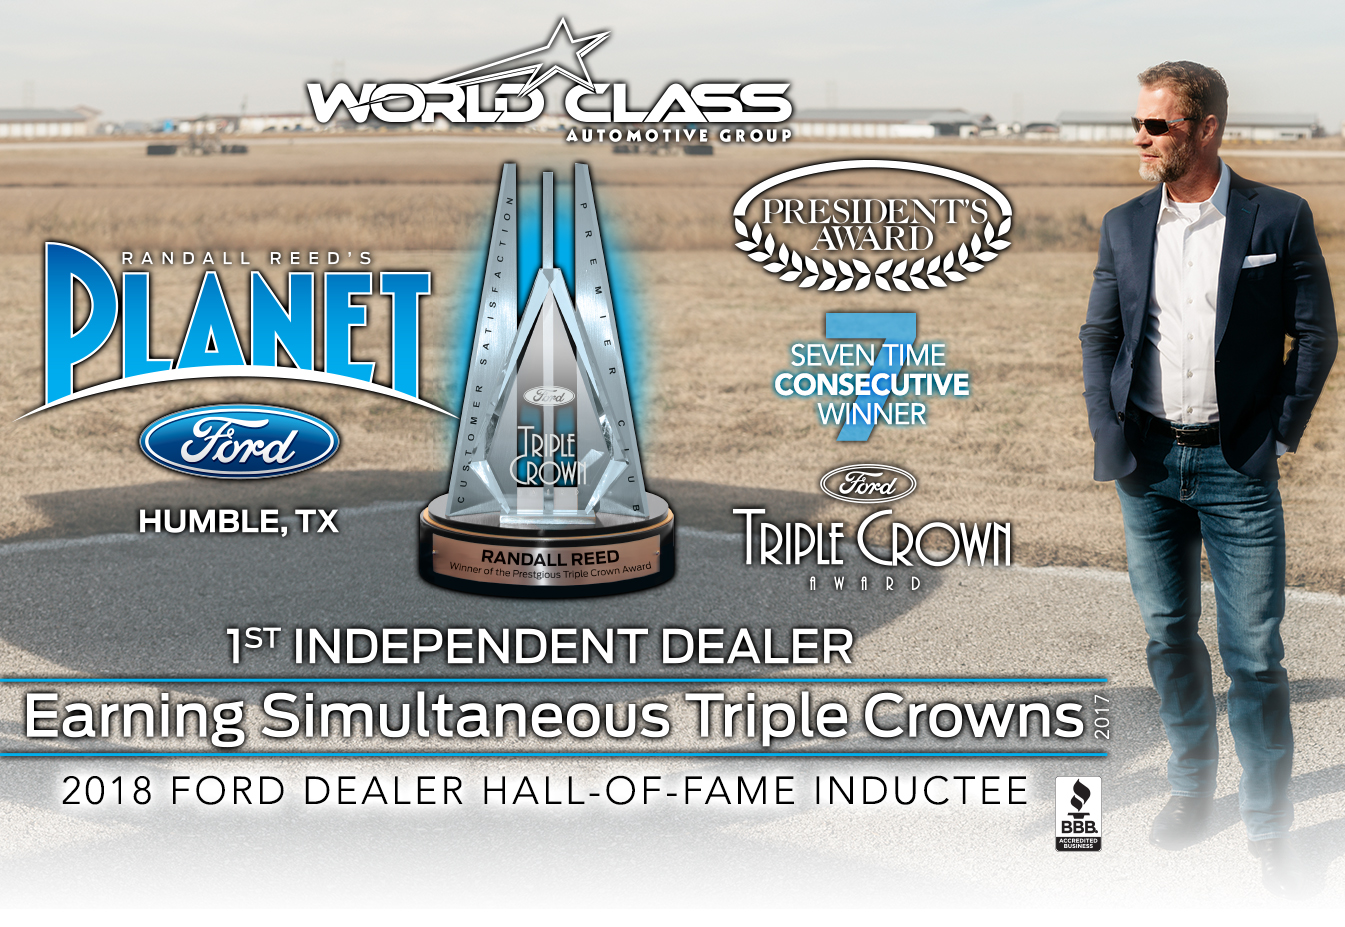 Planet Ford Humble Tx >> Awards And Honors Randall Reed S Planet Ford 59